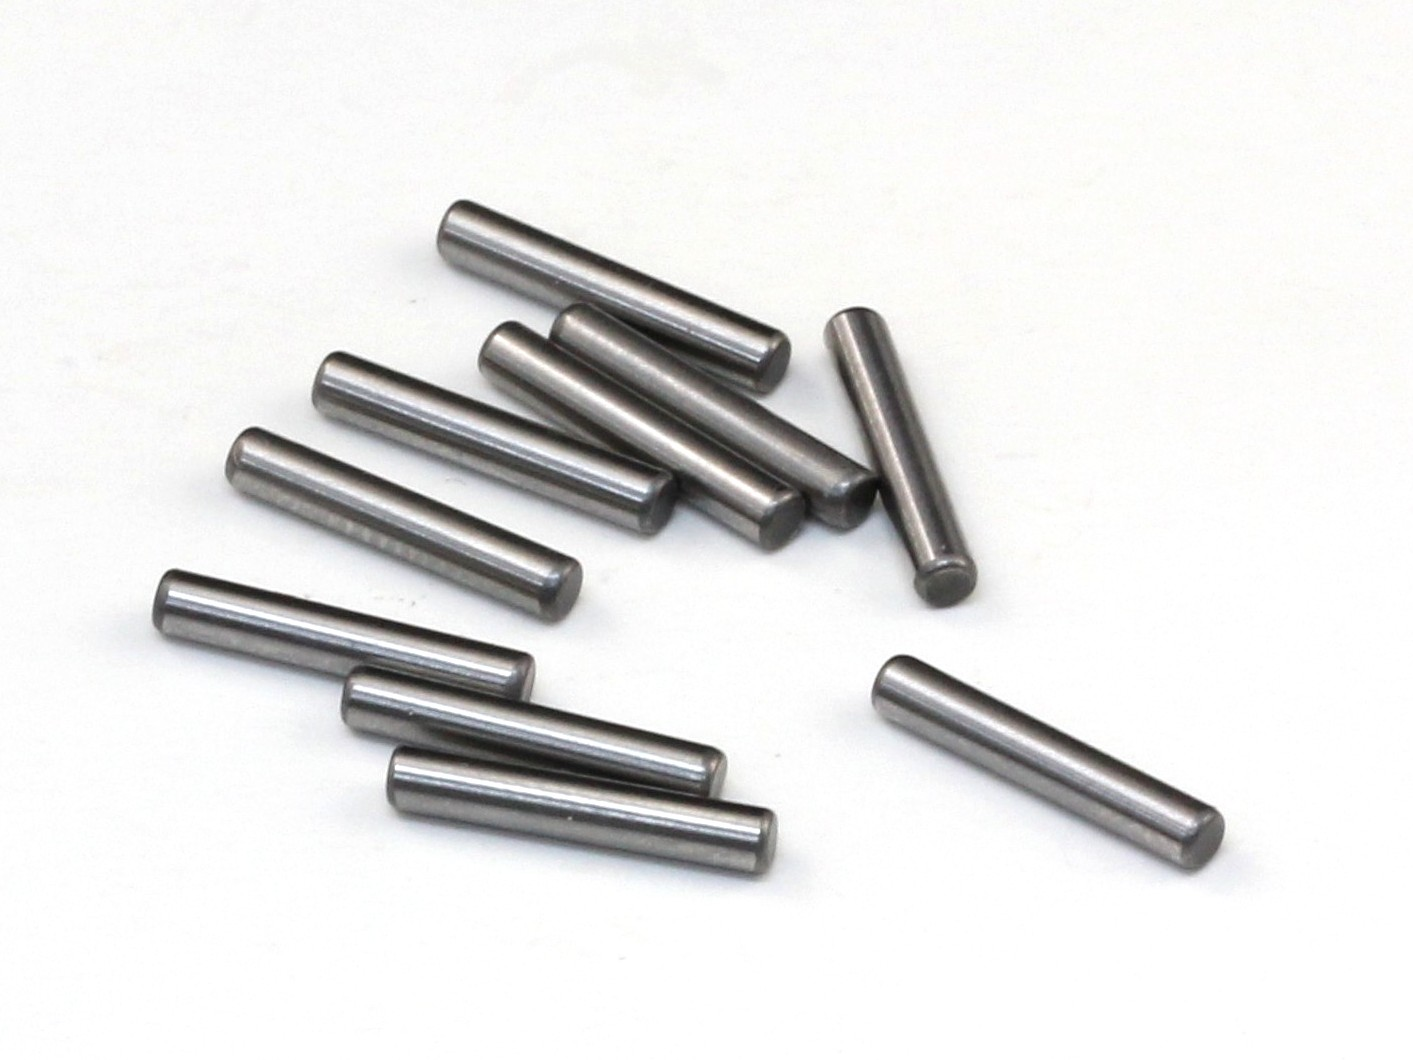 Destiny RX-10s Shaft Pin 2x12mm 10pcs